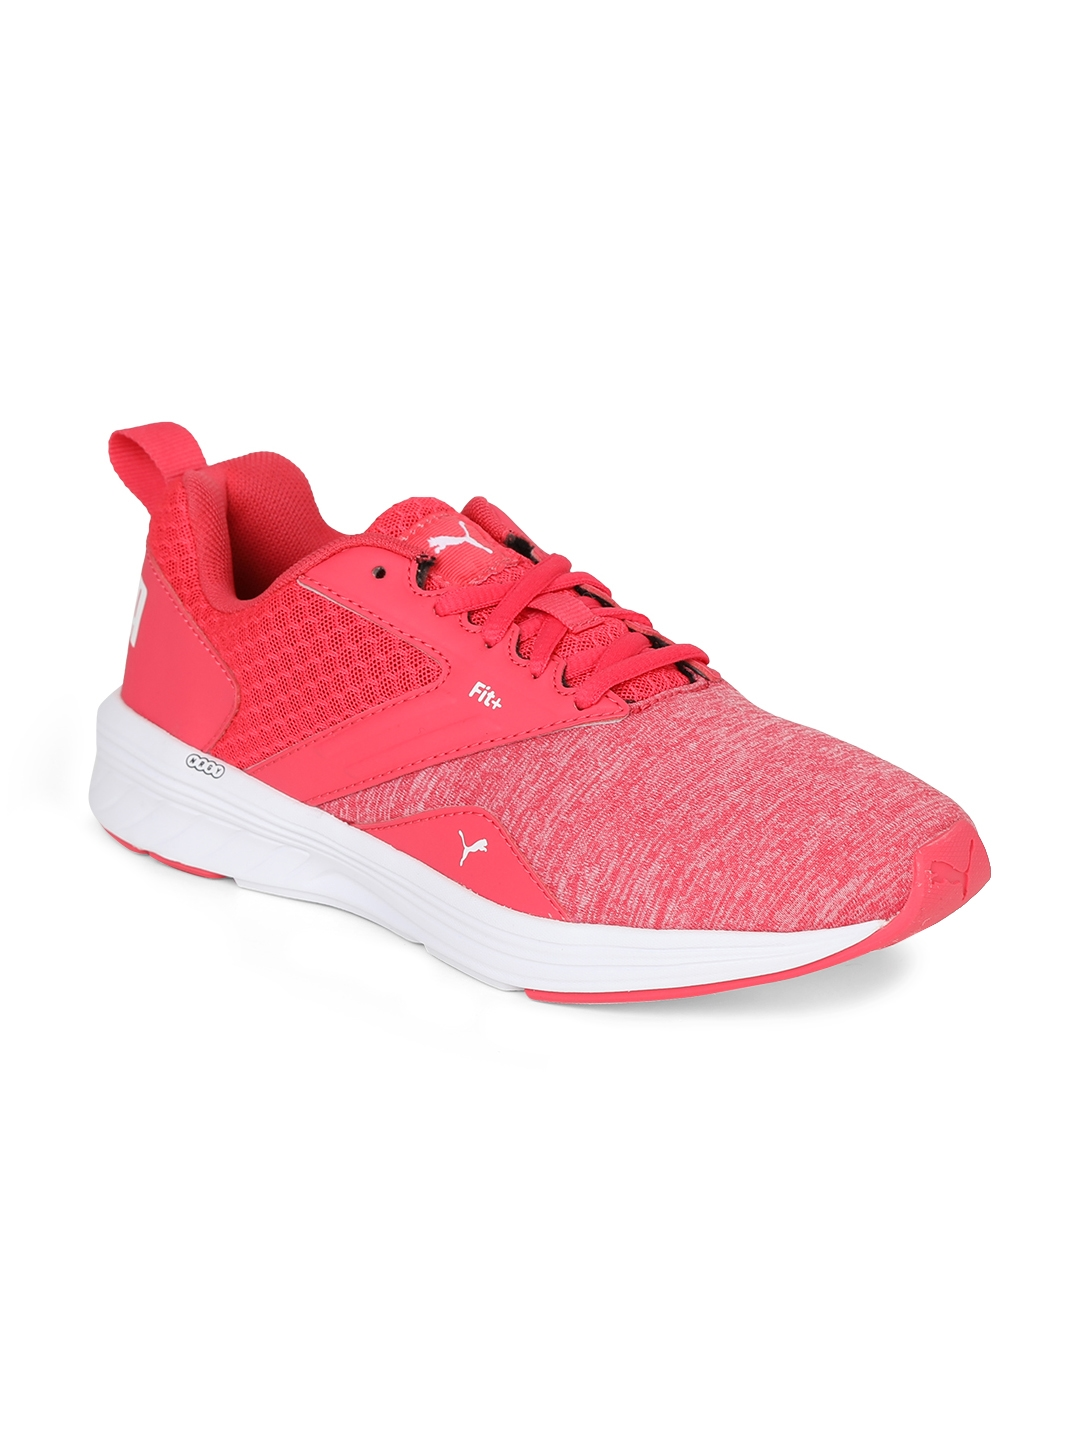 81c37843773 Buy Puma Unisex Pink NRGY Comet Running Shoes - Sports Shoes for ...